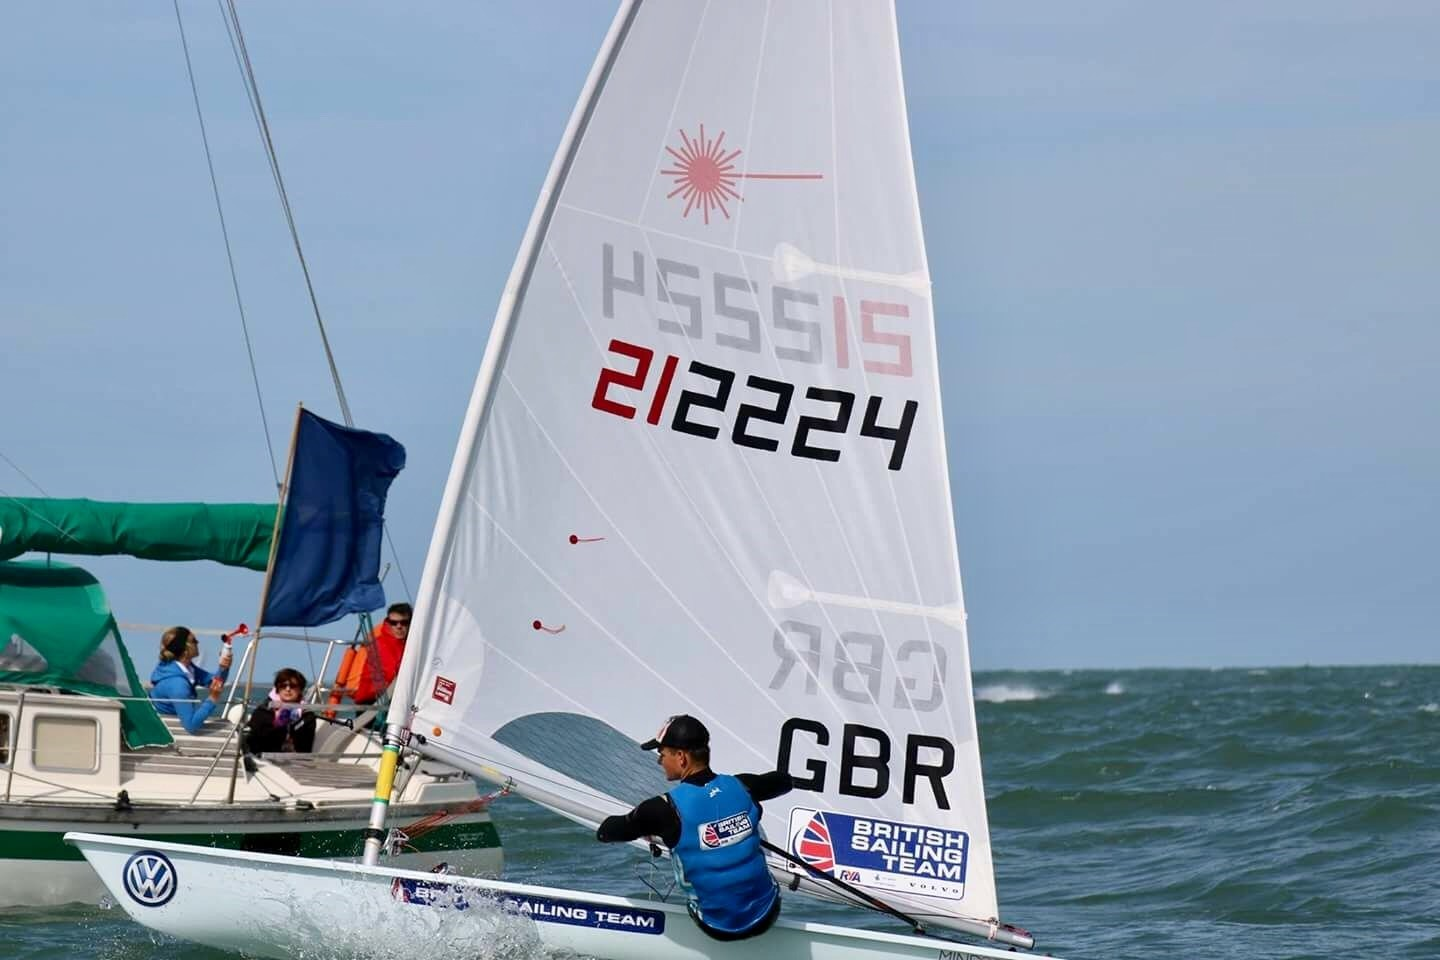 On my way to winning my second ever race at a World Championships!